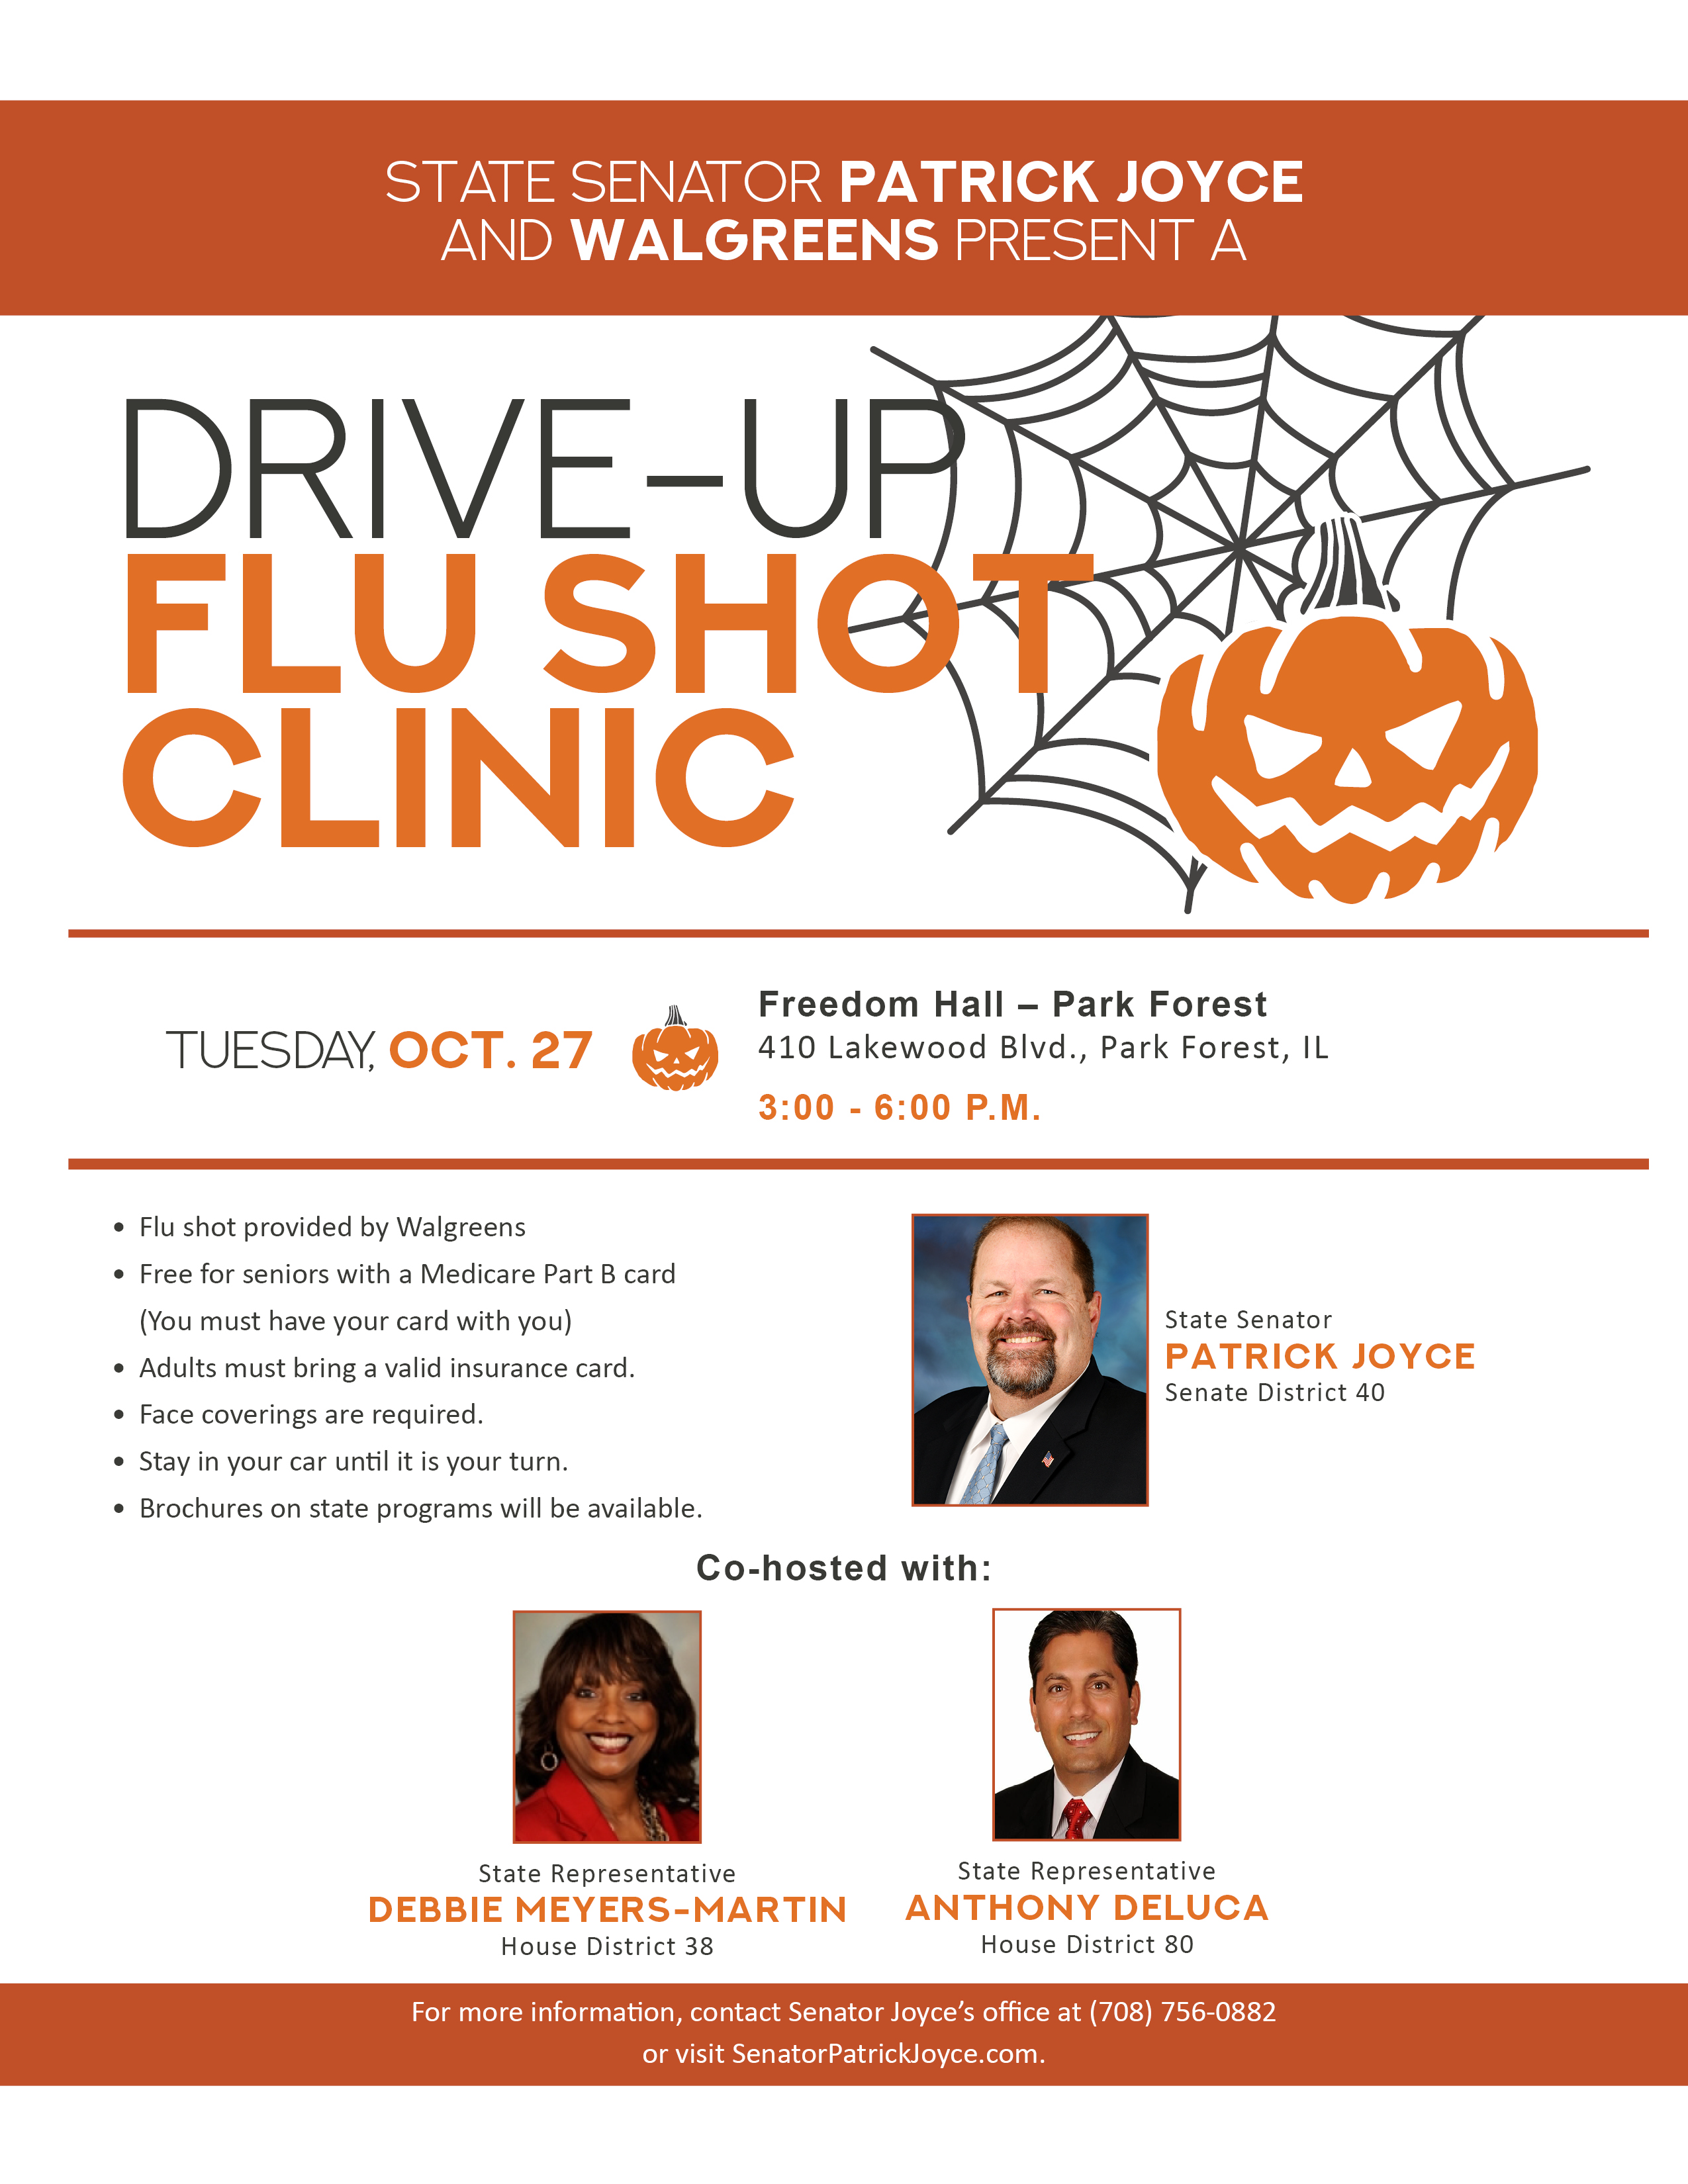 Drive-up Flu Shot Clinic @ Freedom Hall